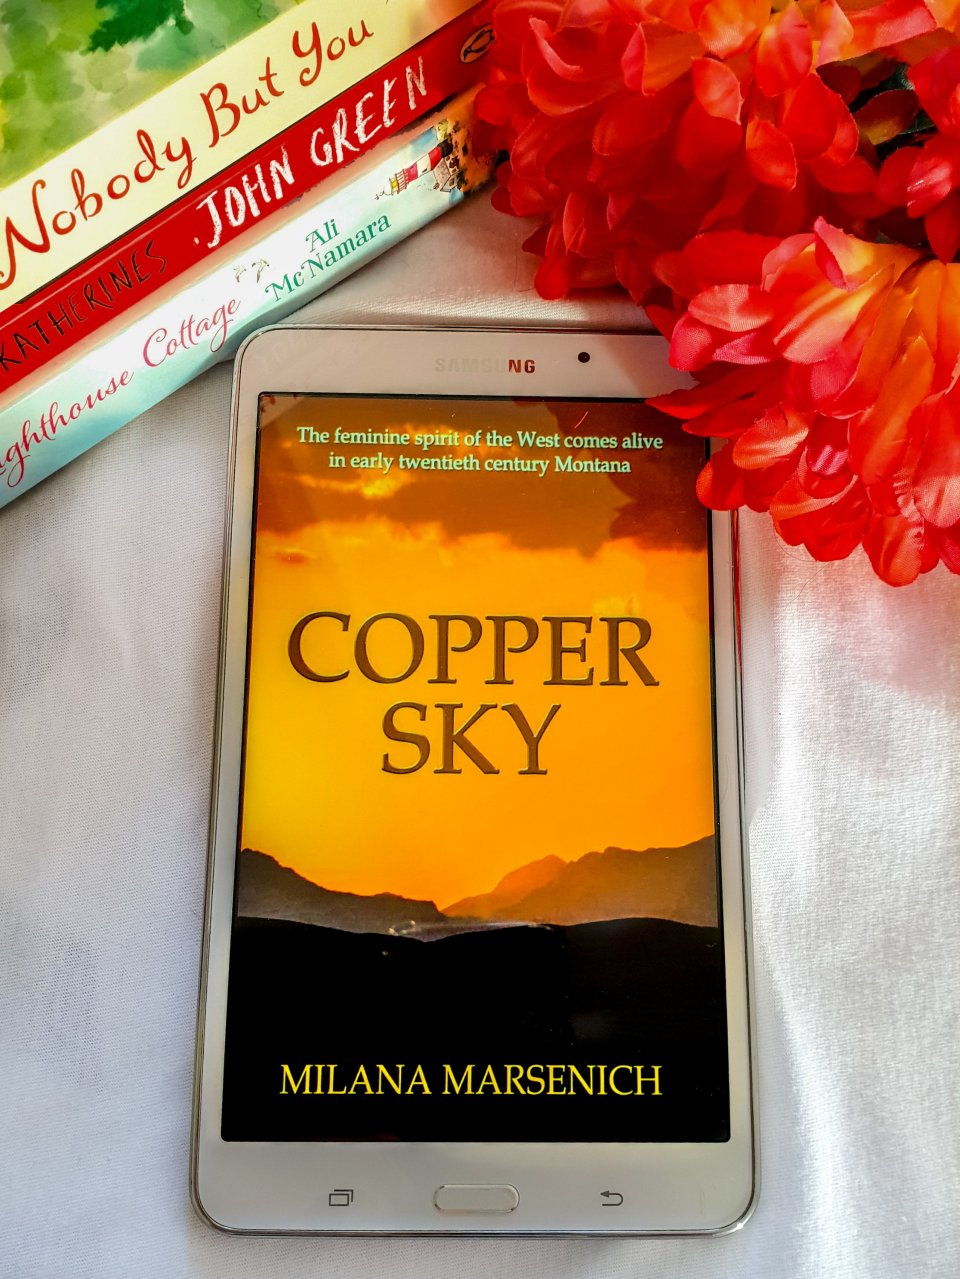 The copper sky